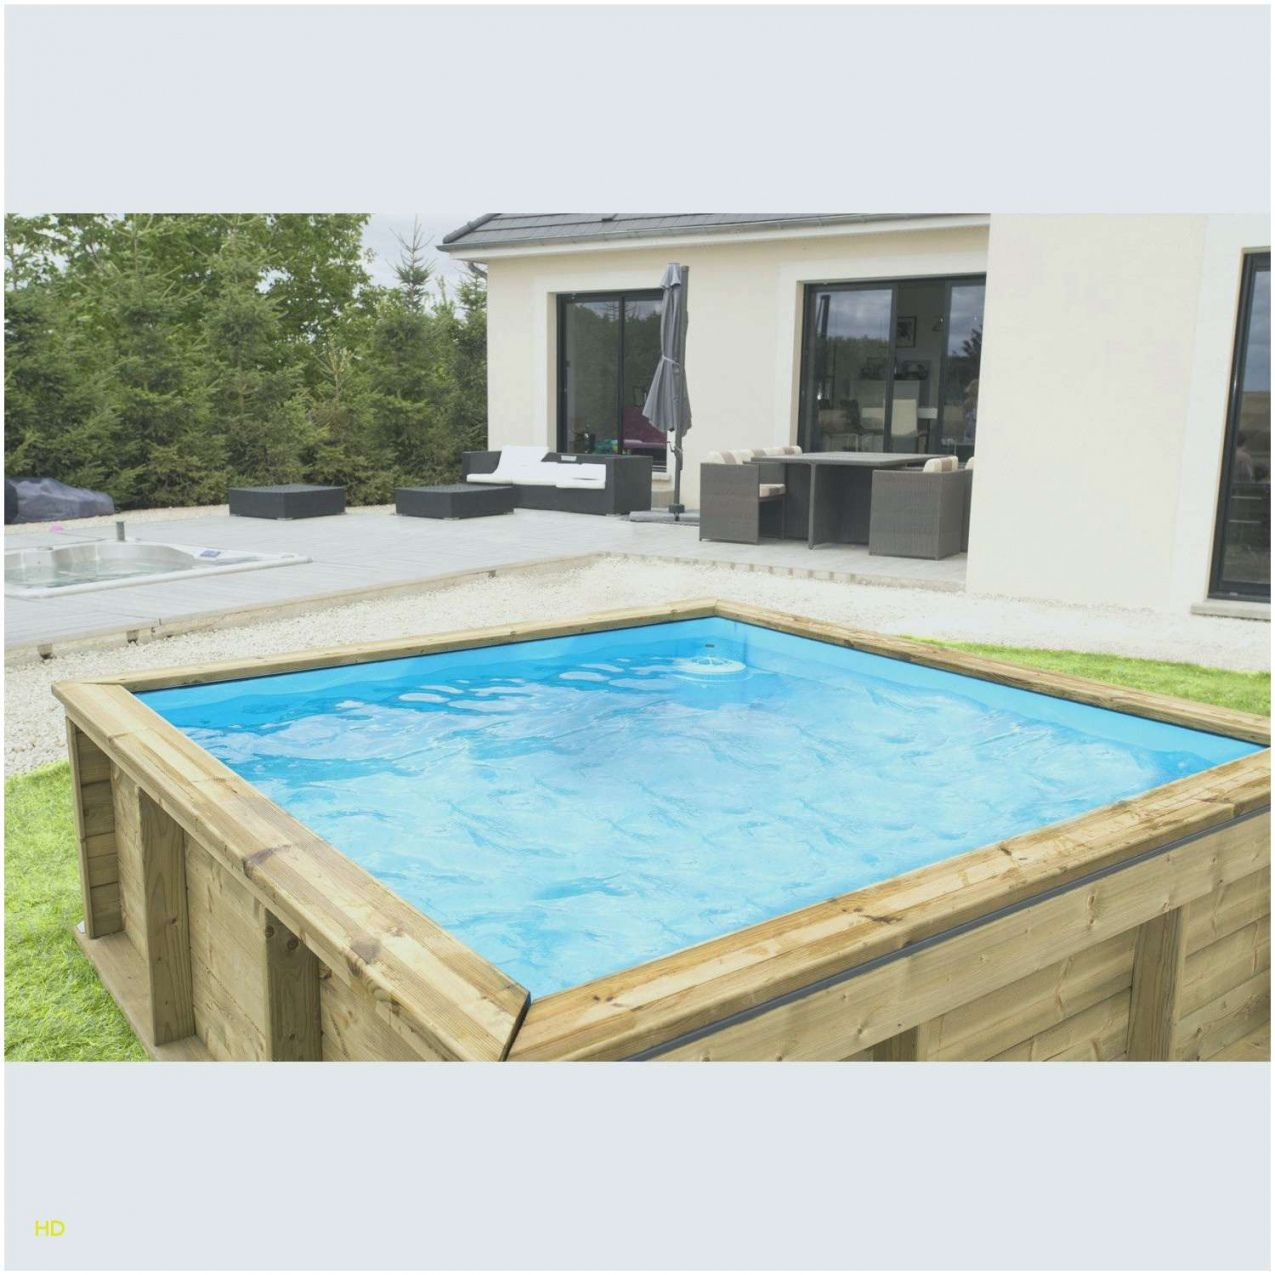 50 Piscine Hors Sol Beton Aspect Bois 2017 Check More At Https Www Unionjacktrooper Com 70 Piscine Hors Piscine Hors Sol Pool Water Features Outdoor Decor